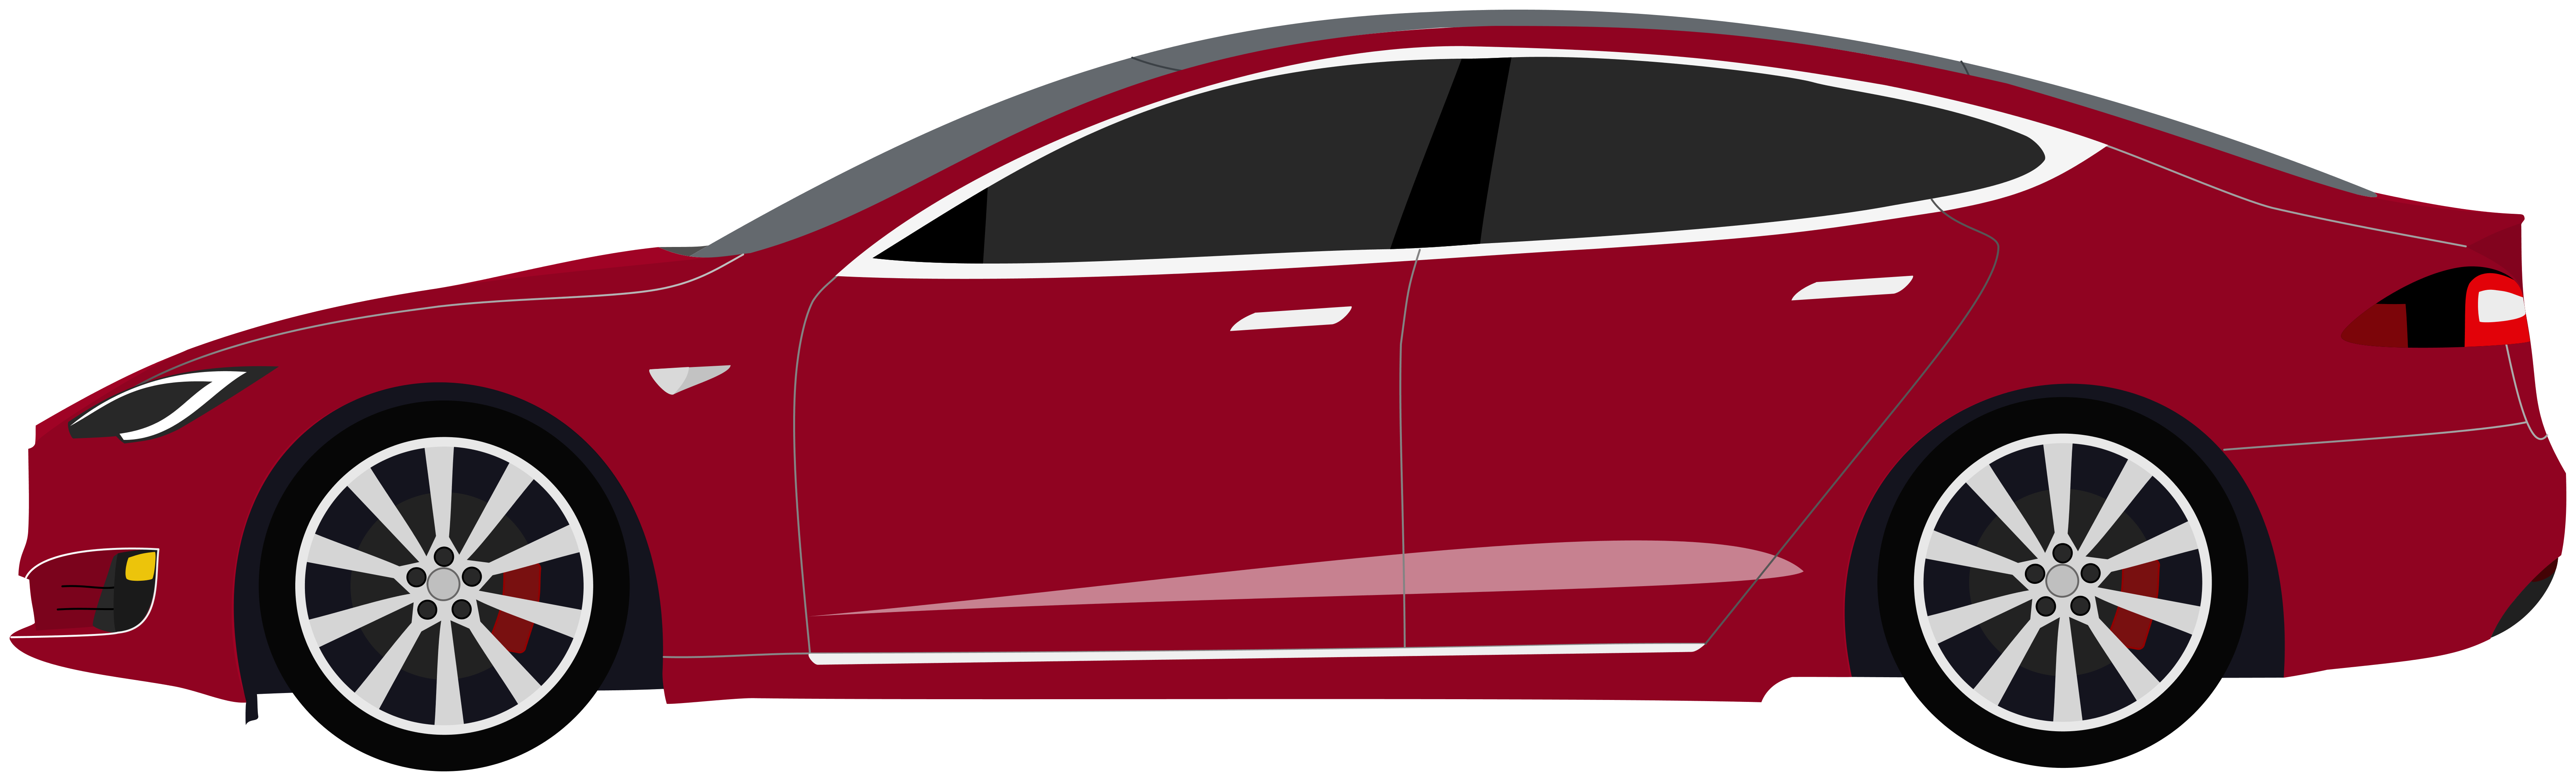 Sleeping car clipart vector free library Fan-made Tesla Cars & Supercharger Cliparts - Album on Imgur vector free library